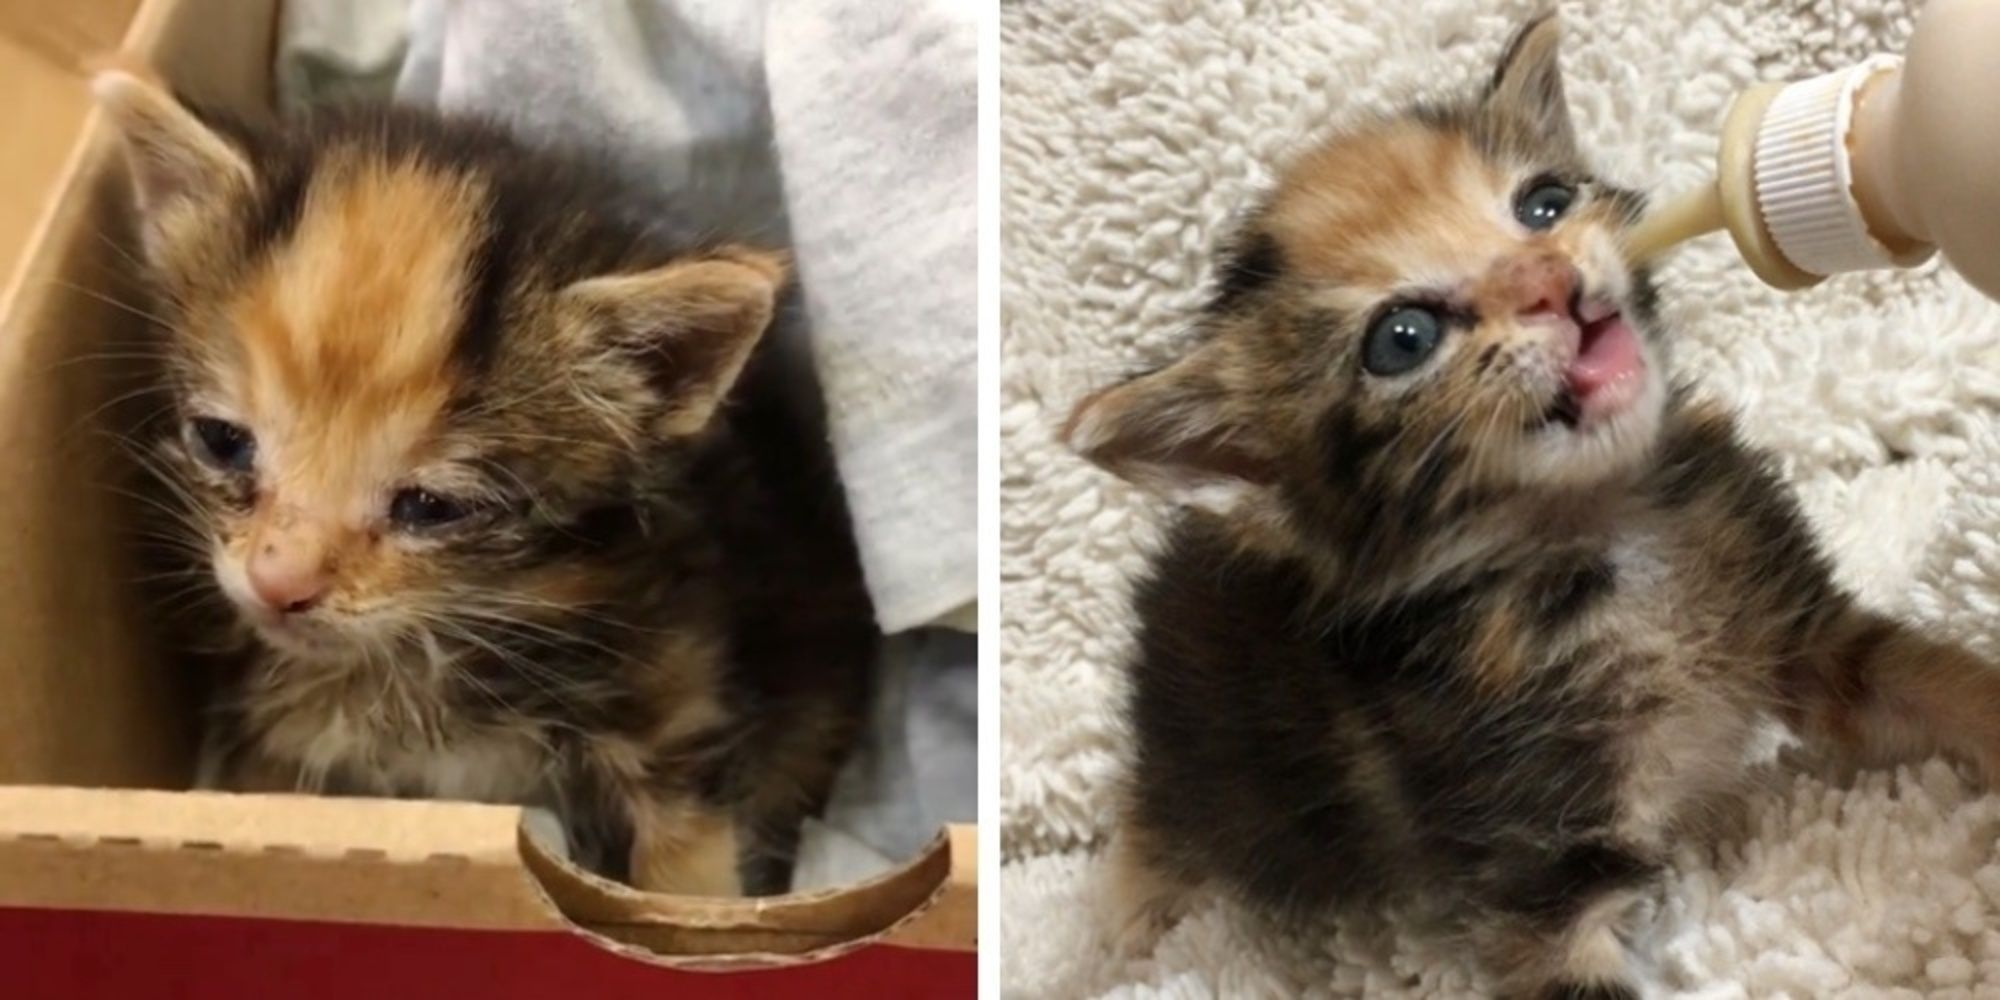 Worker Finds Calico Kitten Meowing Outside Alone and